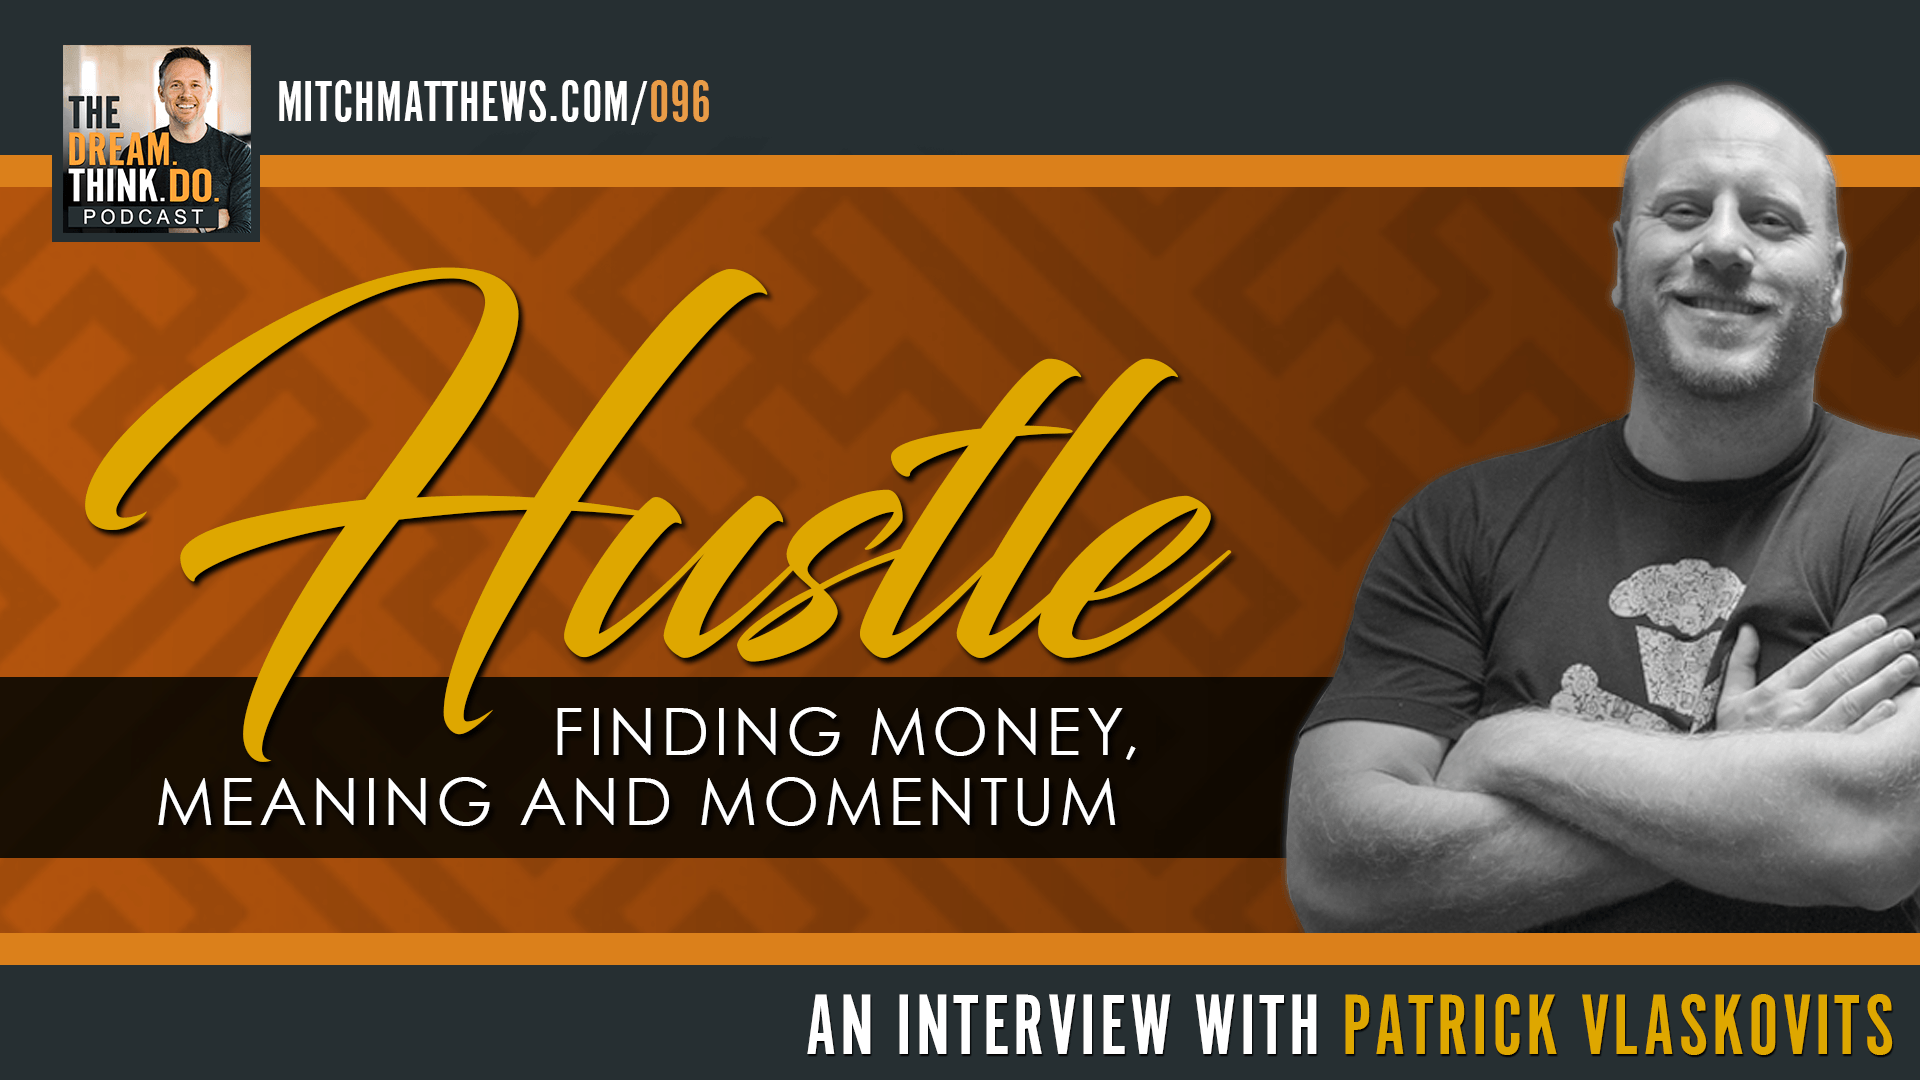 Hustle - Finding Money, Meaning and Momentum I An Interview with Patrick Vlaskovits